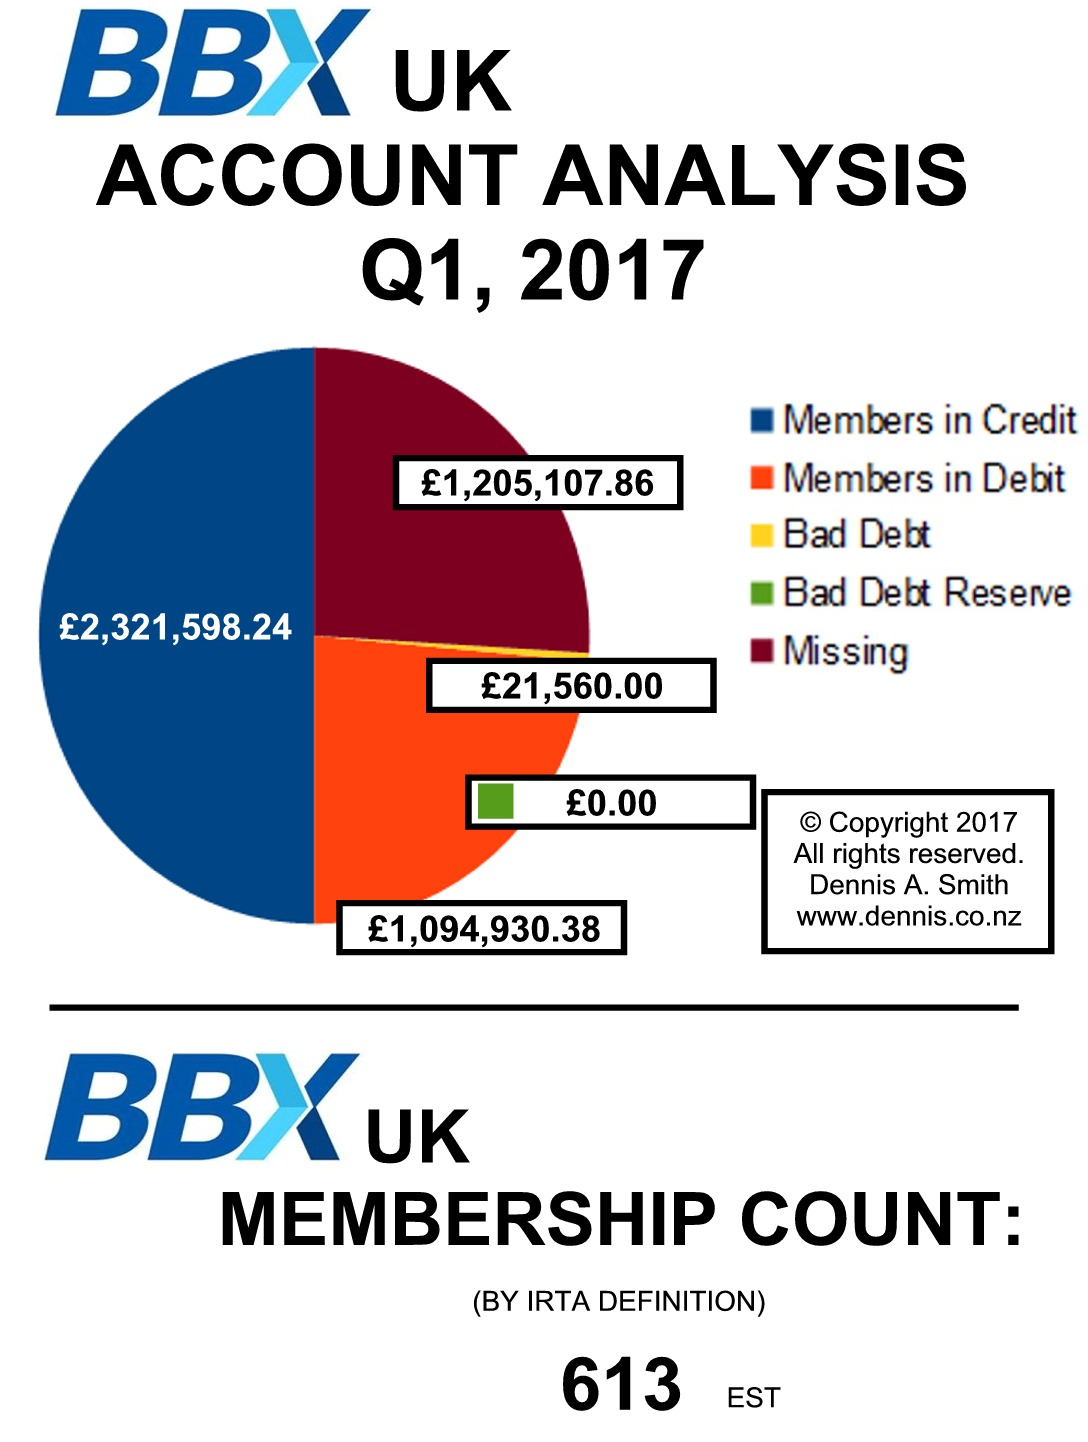 24. BBX UK Membership Analysis